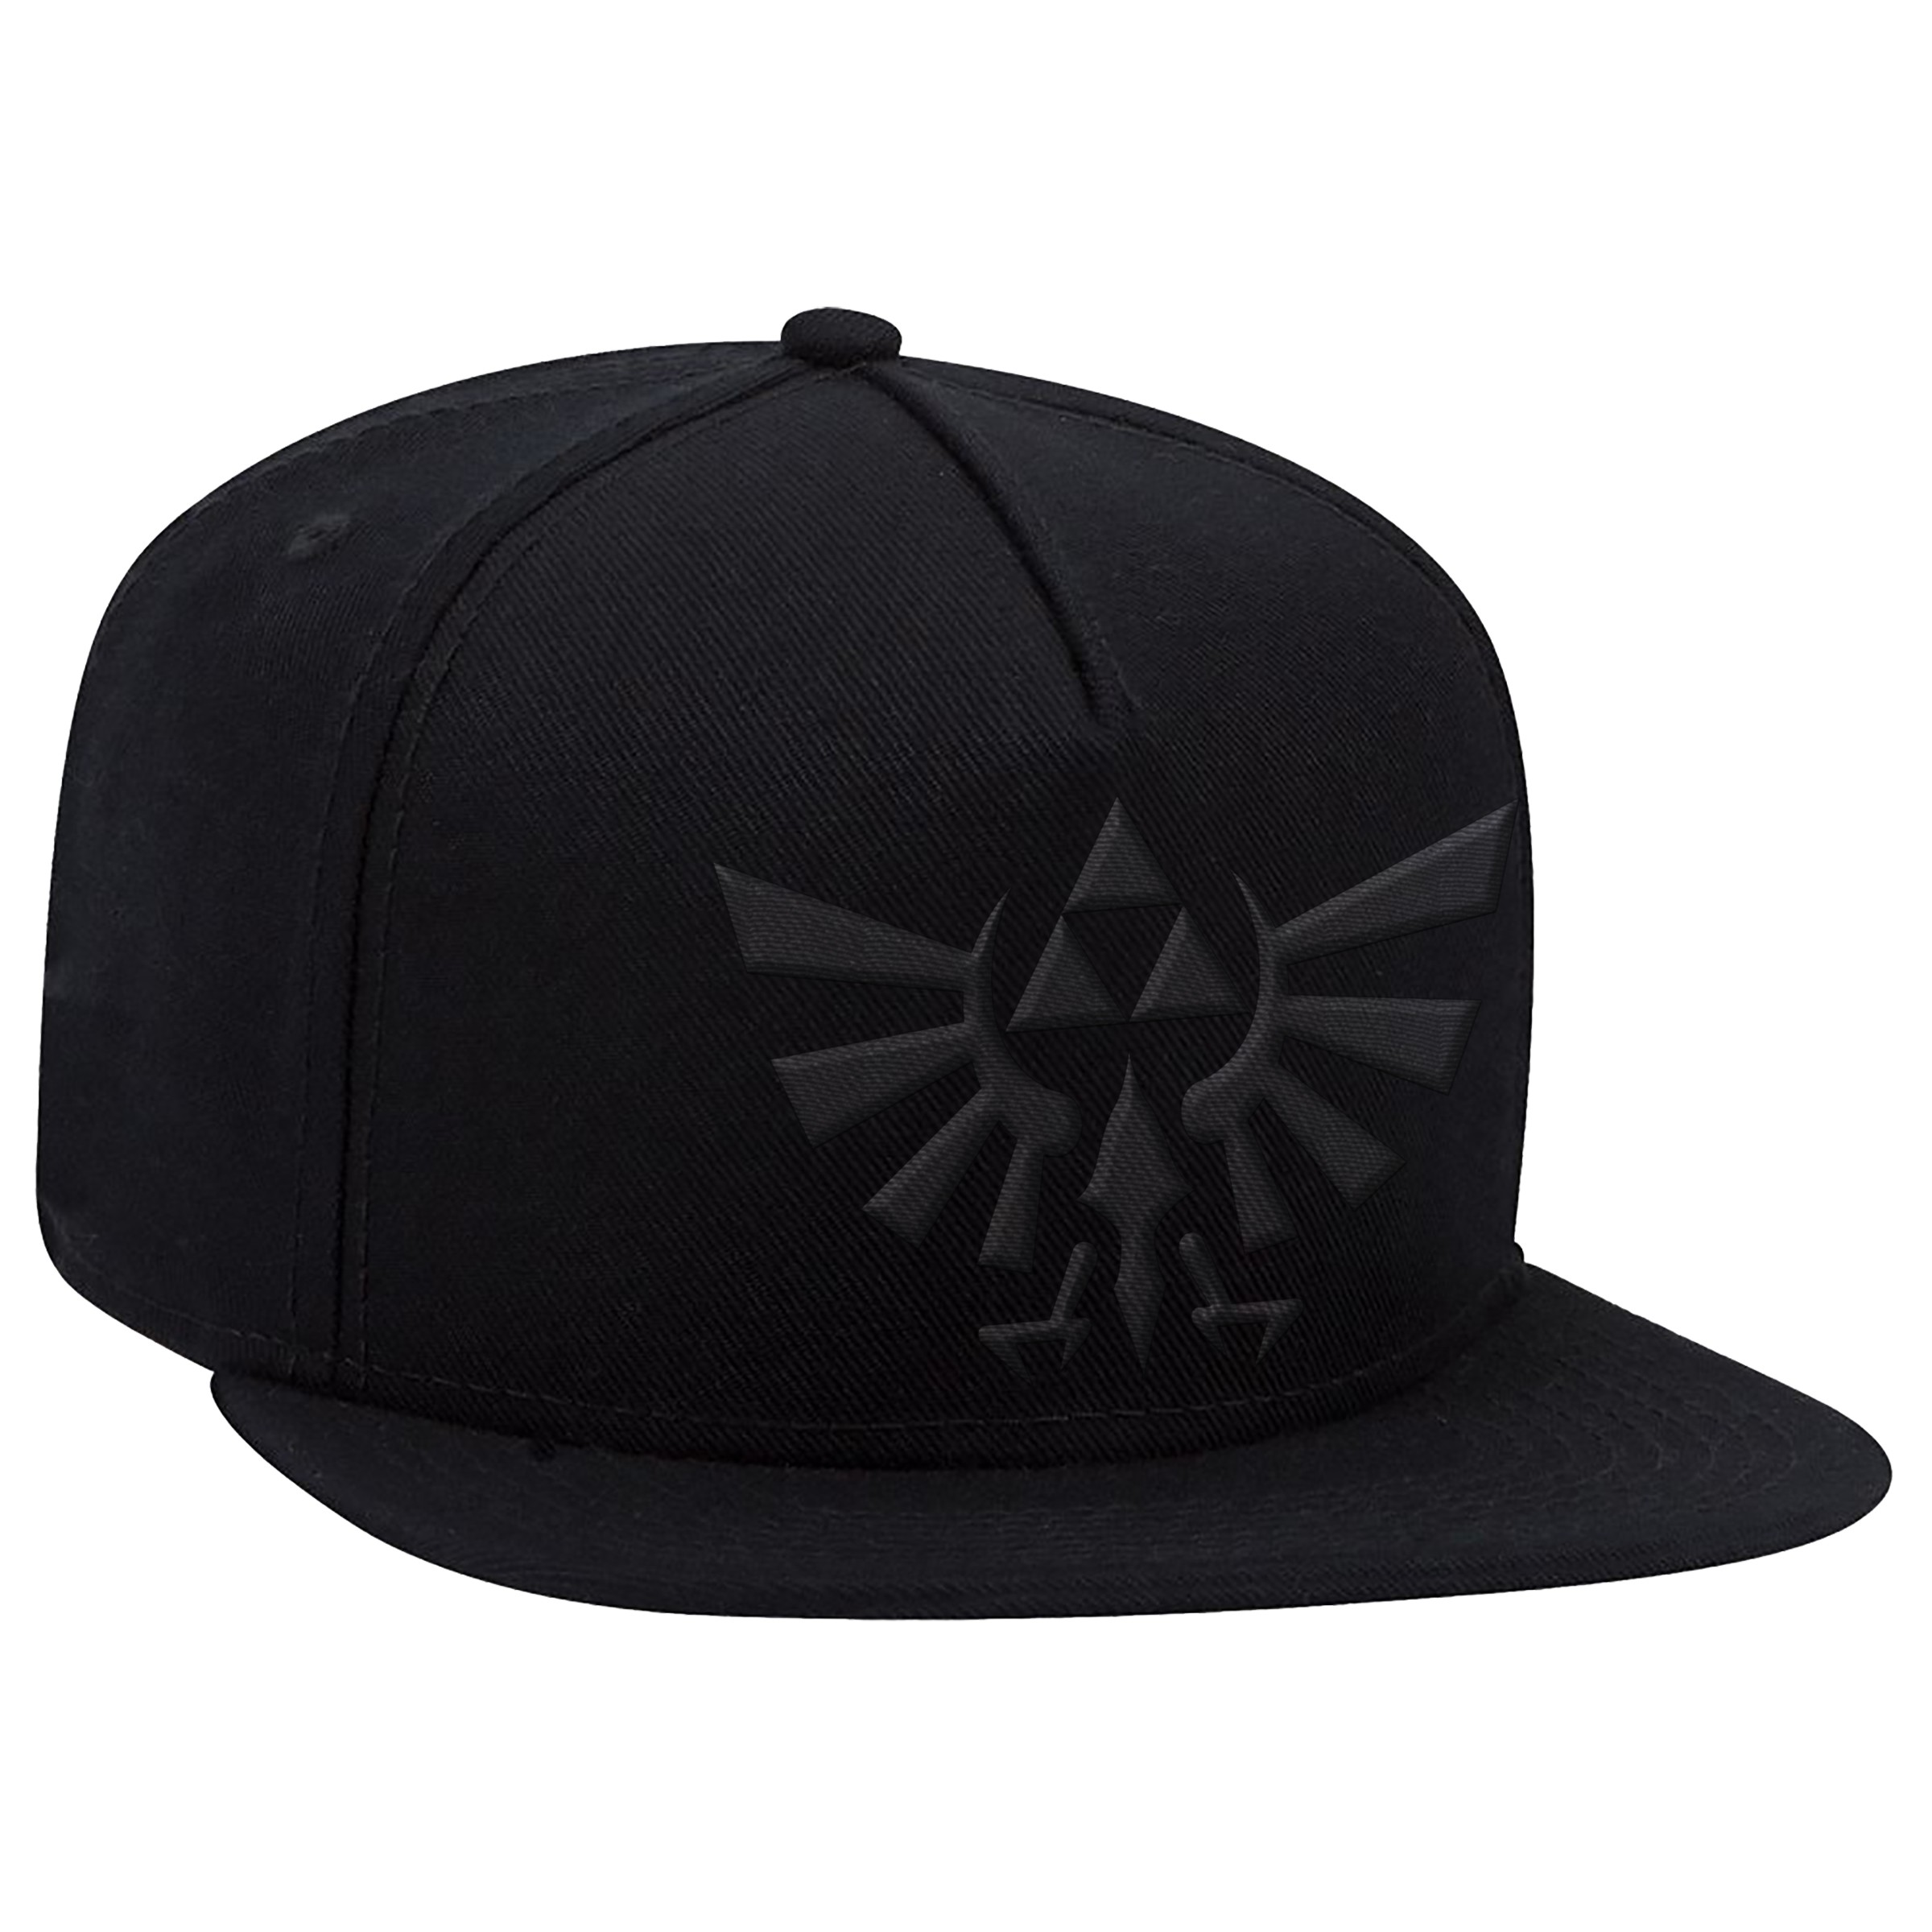 "The Legend of Zelda™ ""Black Hyrule Crest"" Flat Bill Hat - Officially Licensed by Nintendo"